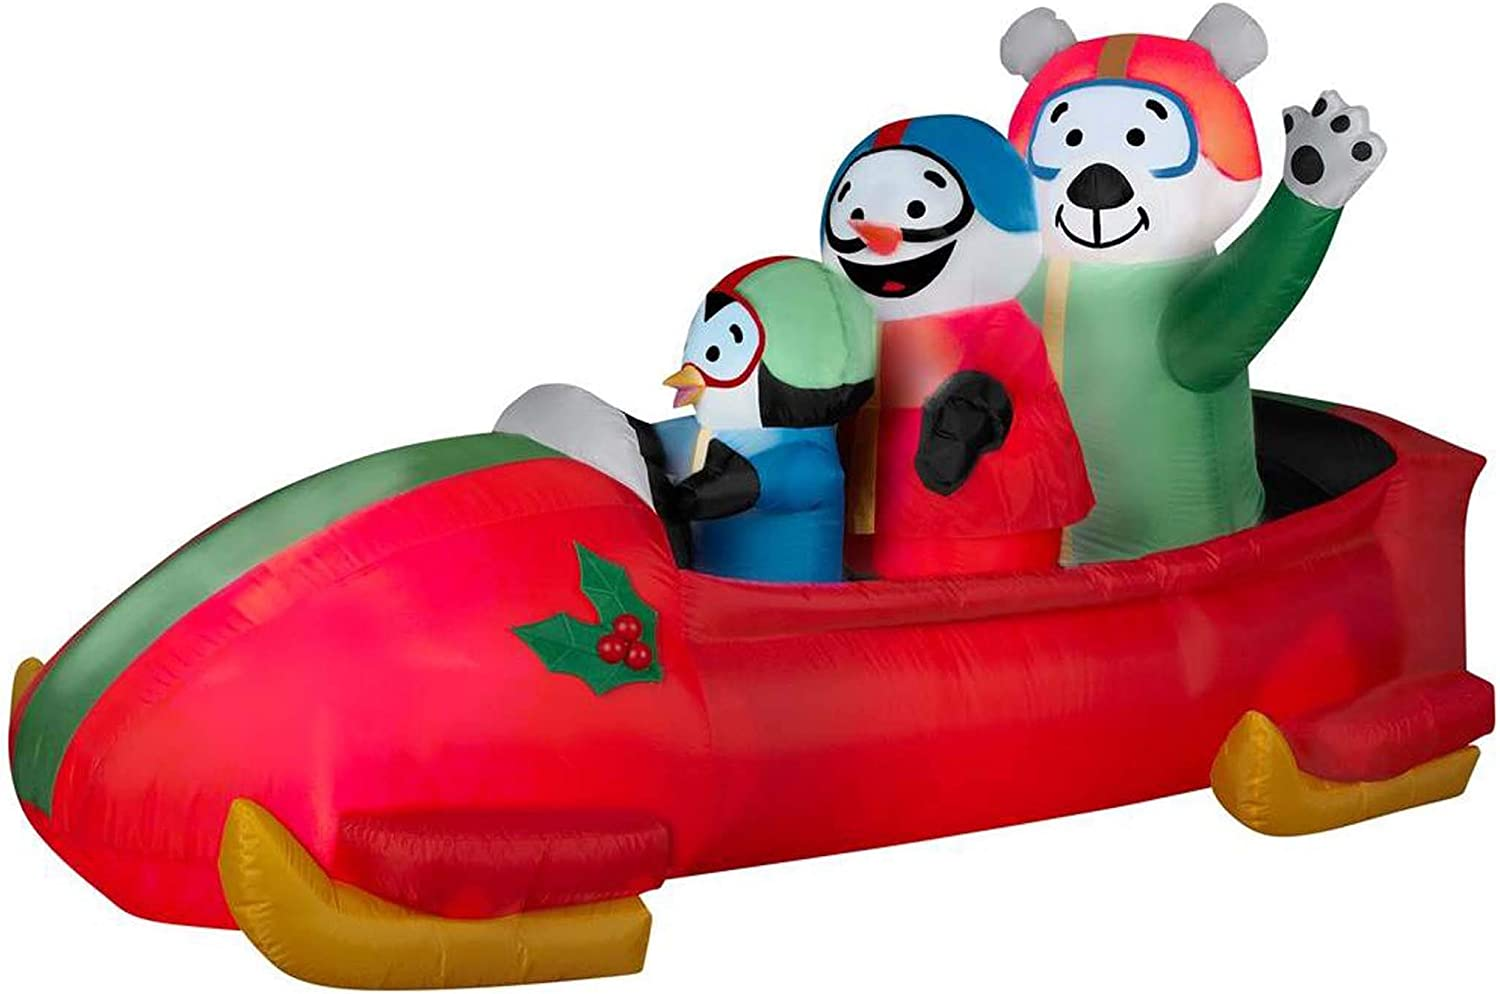 Amazon Com Gemmy Airblown Inflatable Animated Shaking Bobsled With A Penguin Snowman And Polar Bear Inside Indoor Outdoor Yard Decoration 7 Foot Long X 3 5 Foot Tall X 3 Foot Wide Home Kitchen